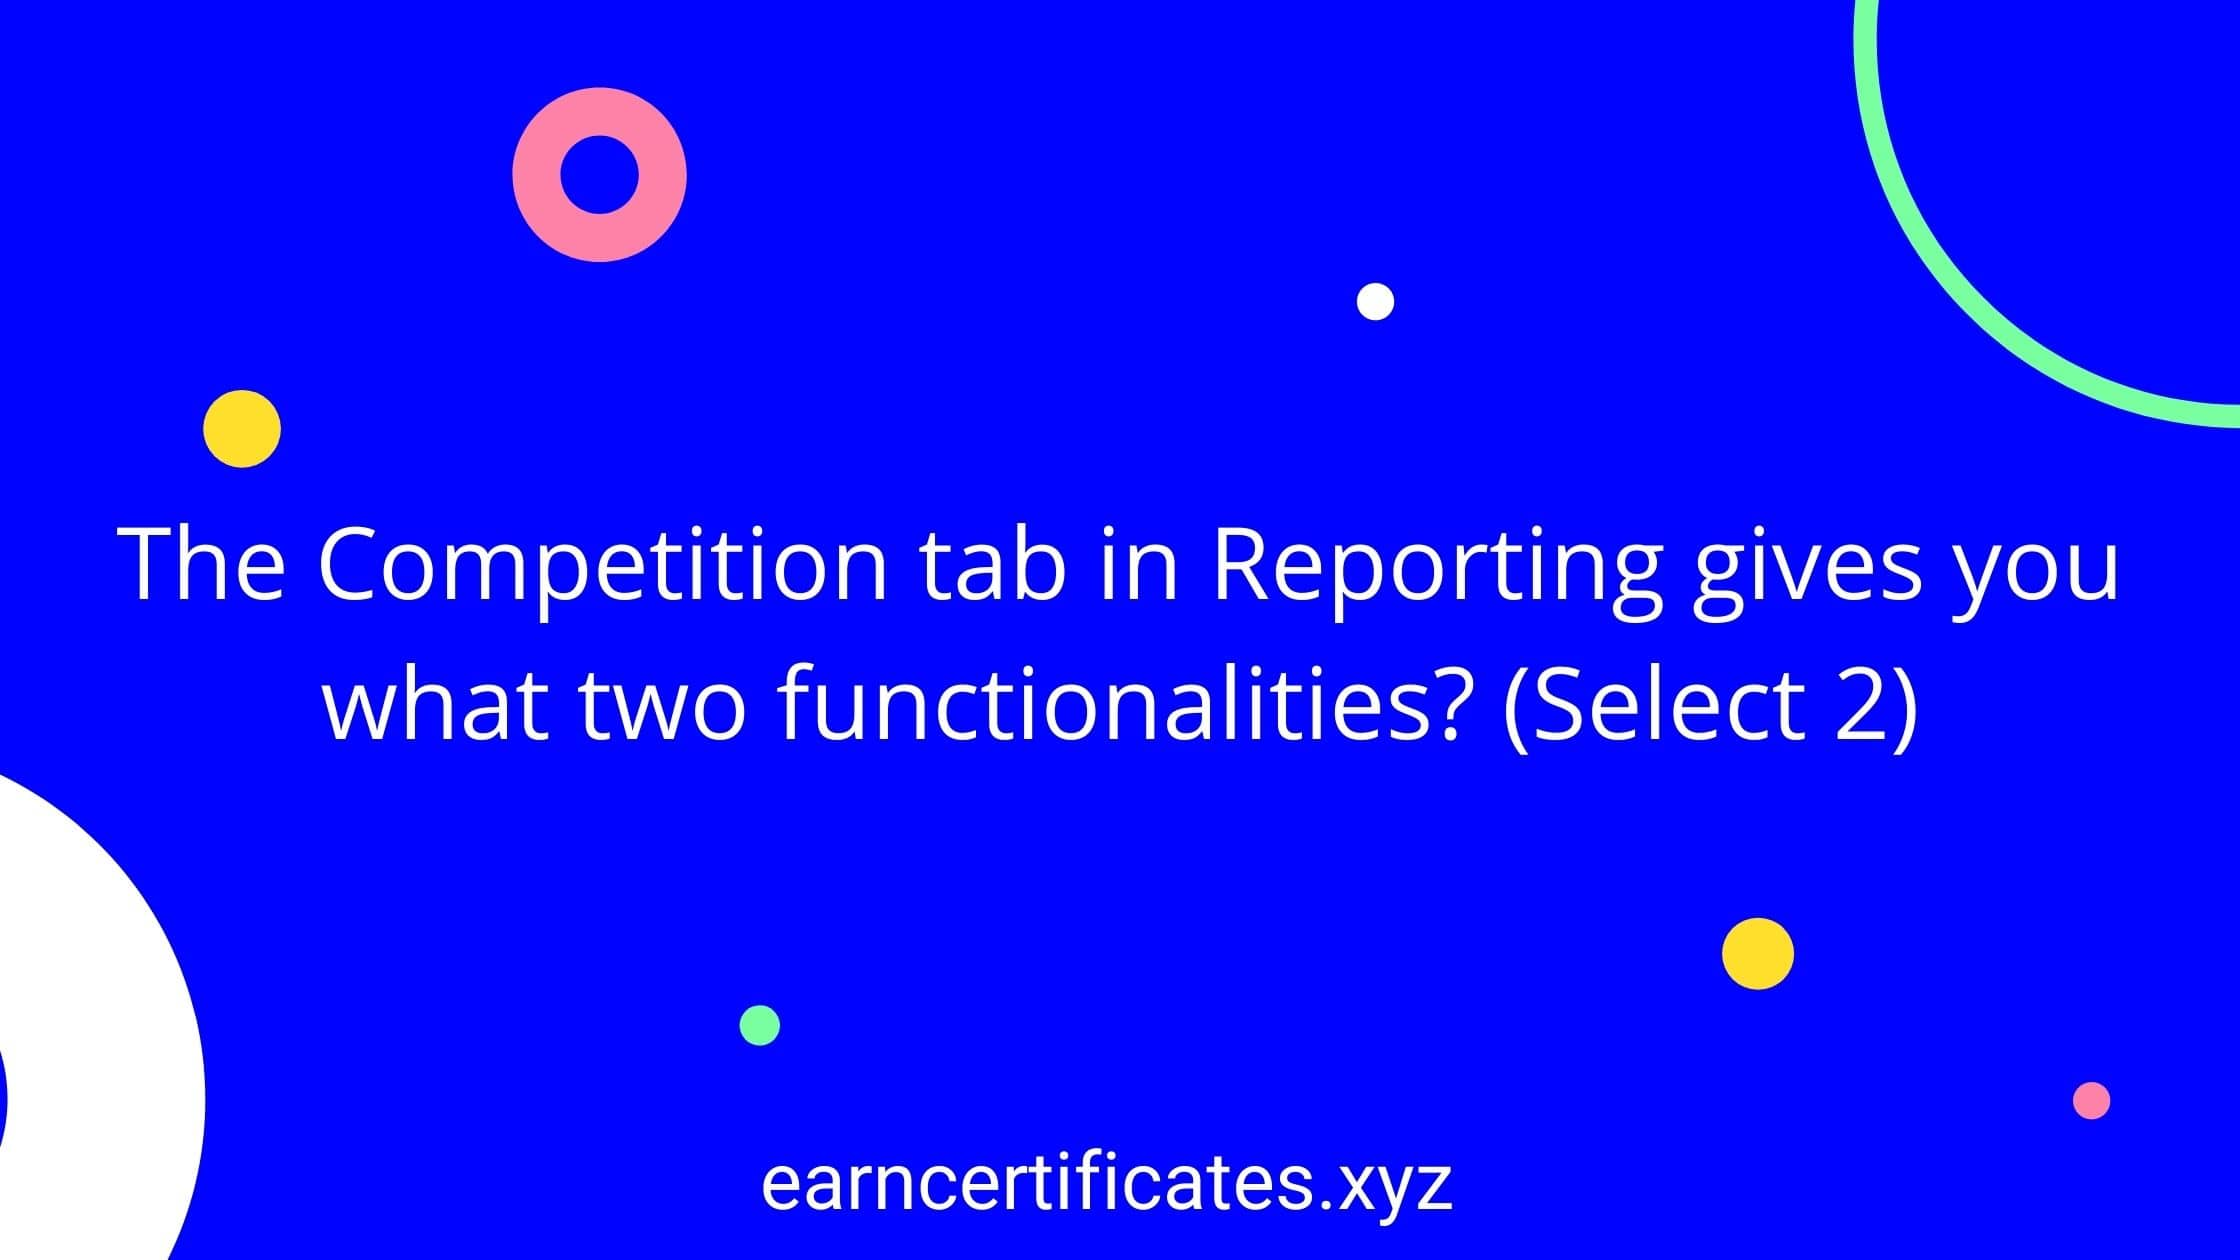 The Competition tab in Reporting gives you what two functionalities? (Select 2)